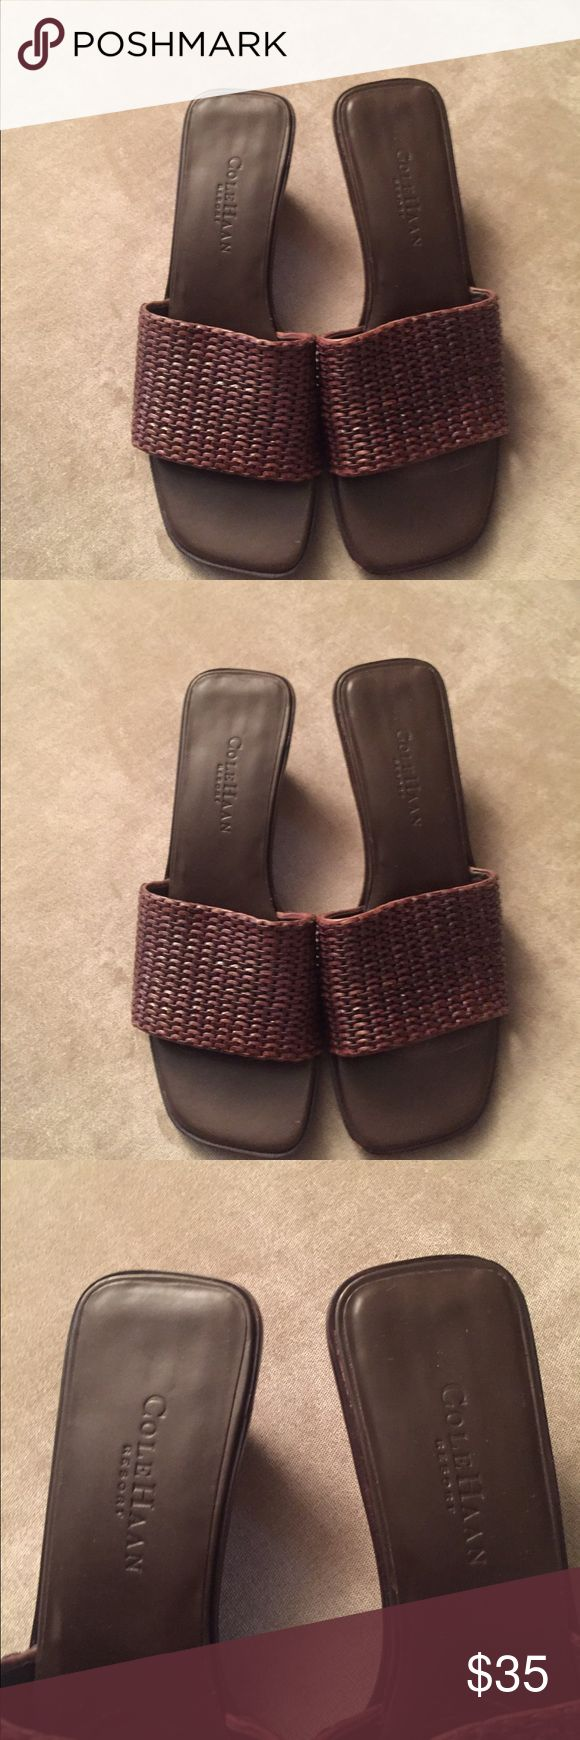 ✂️⚡️SALE Cole Haan Slide in Sandals These are slightly worn Cole Haan sandals in a brown size 7.5 Cole Haan Shoes Sandals